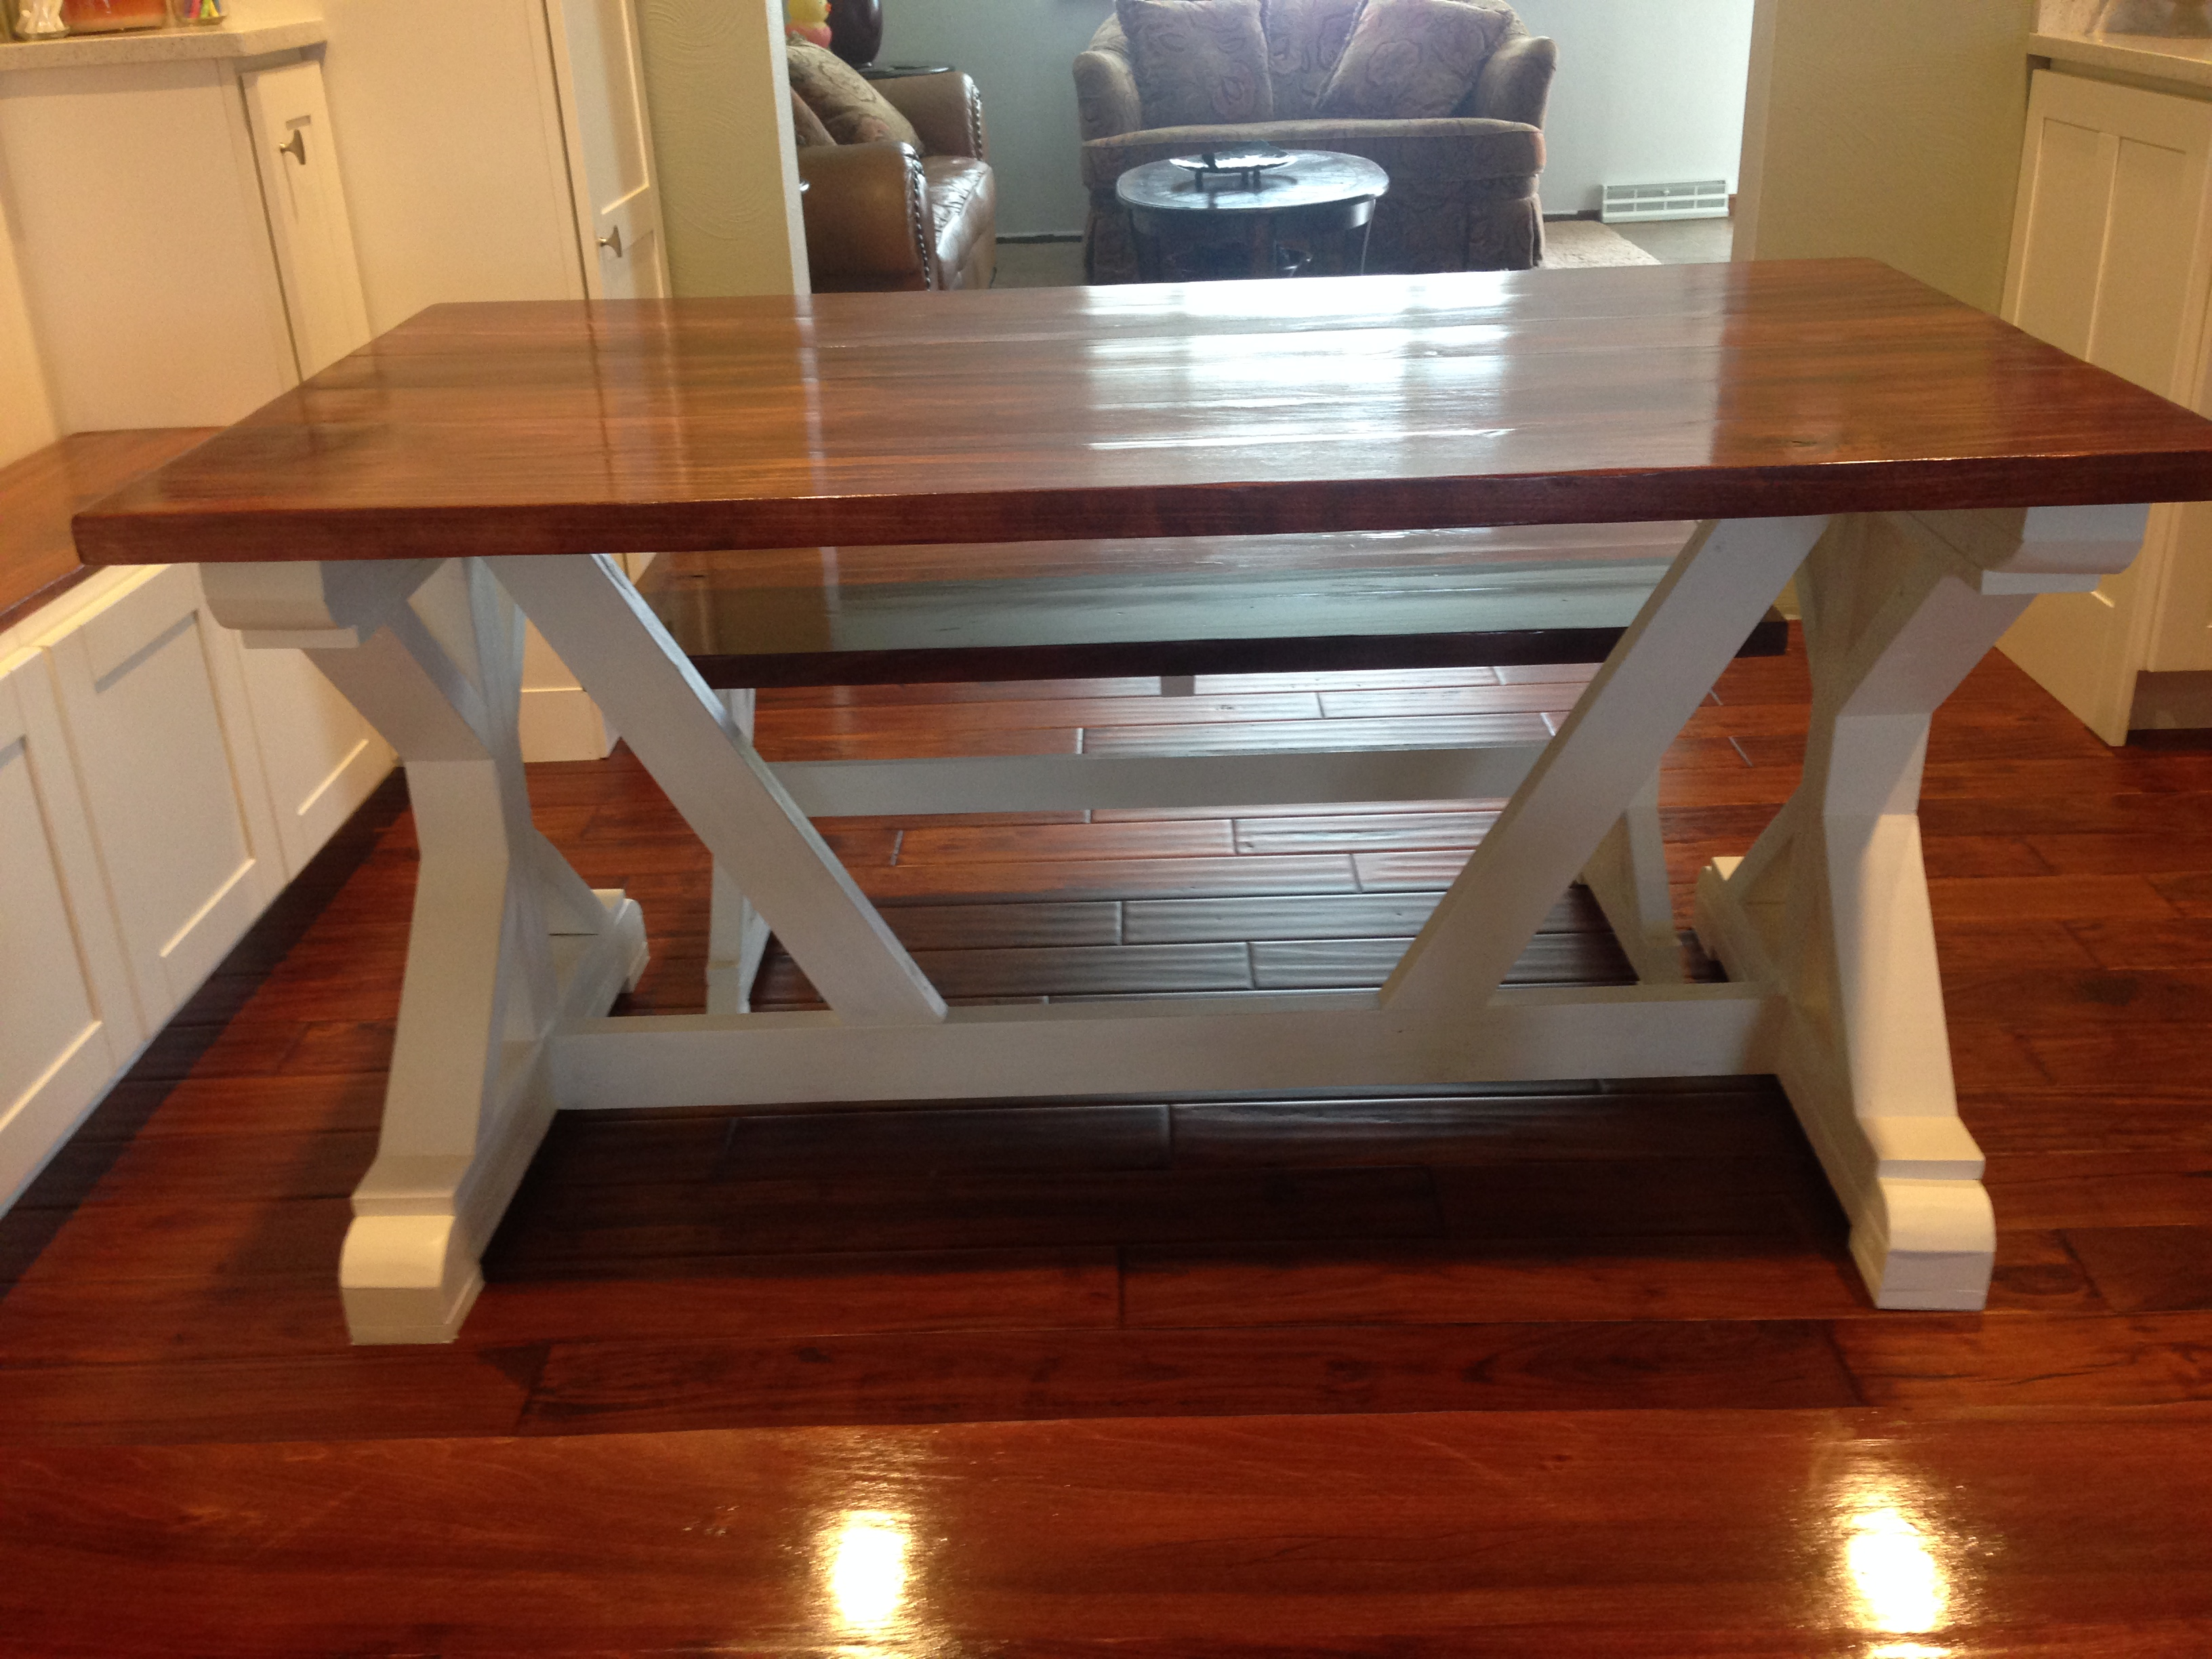 Ana white new kitchen new table diy projects - Ana white kitchen table ...